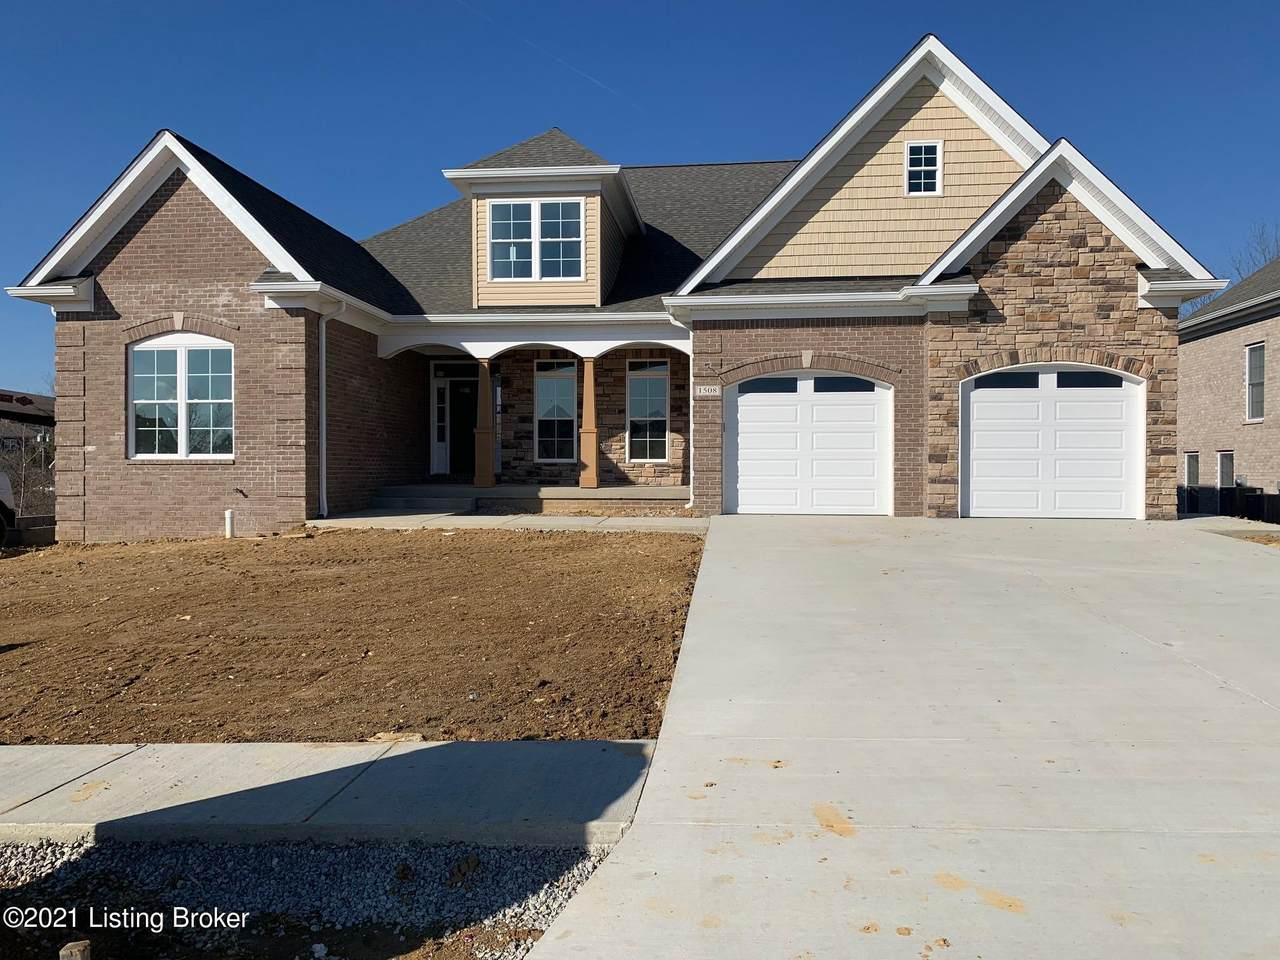 1508 Lincoln Hill Way - Photo 1